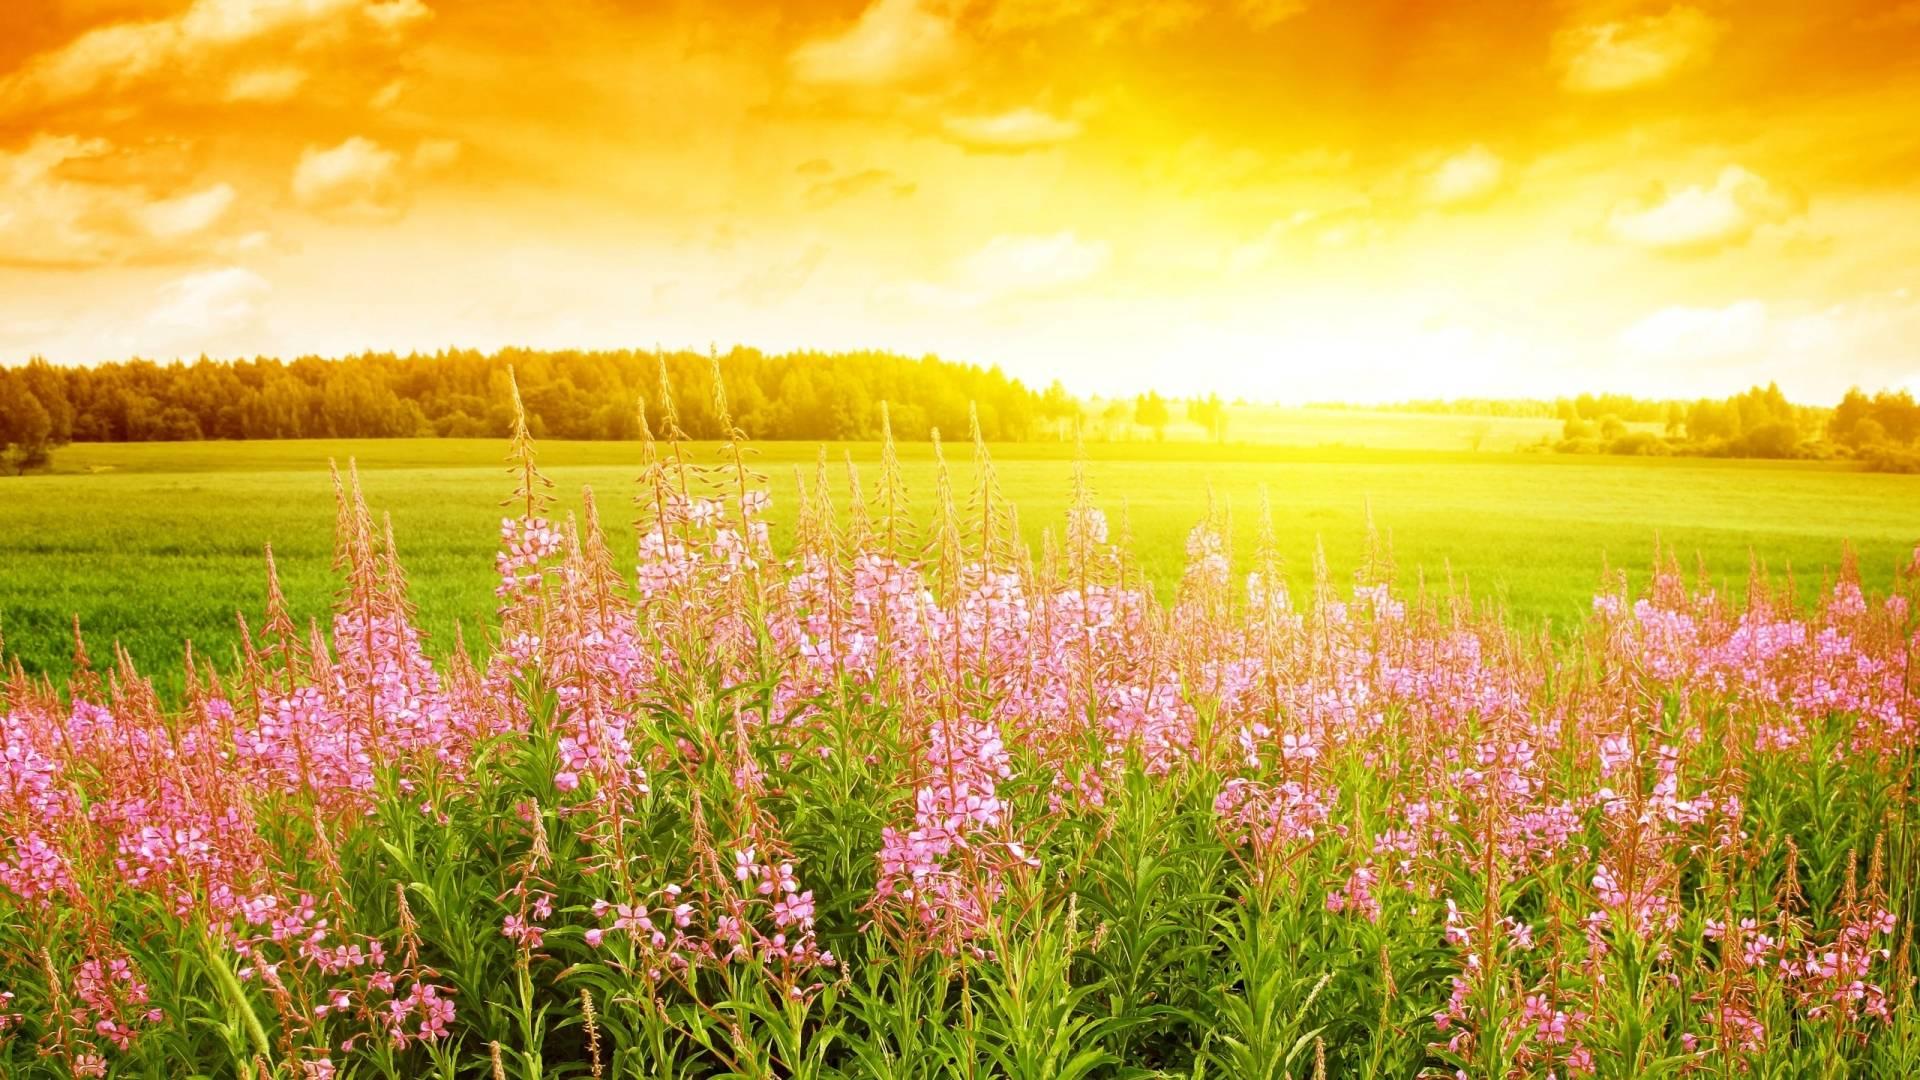 Summer Flowers In Season Wallpaper Background 1 HD Wallpapers ...